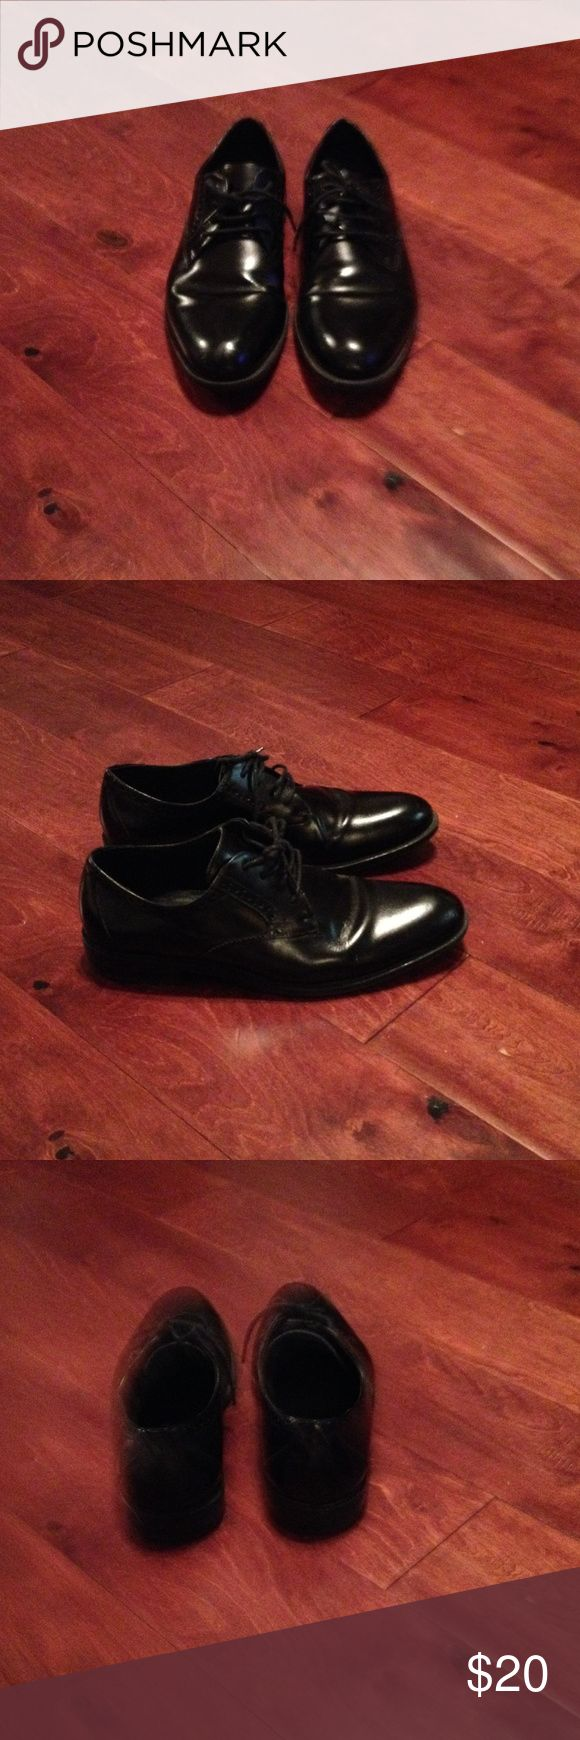 Men's shoes💥sale💥 Men's shoes/ Stacy Adams/ size 8M/ good condition/ a couple of small scratches on toe Stacy Adams Shoes